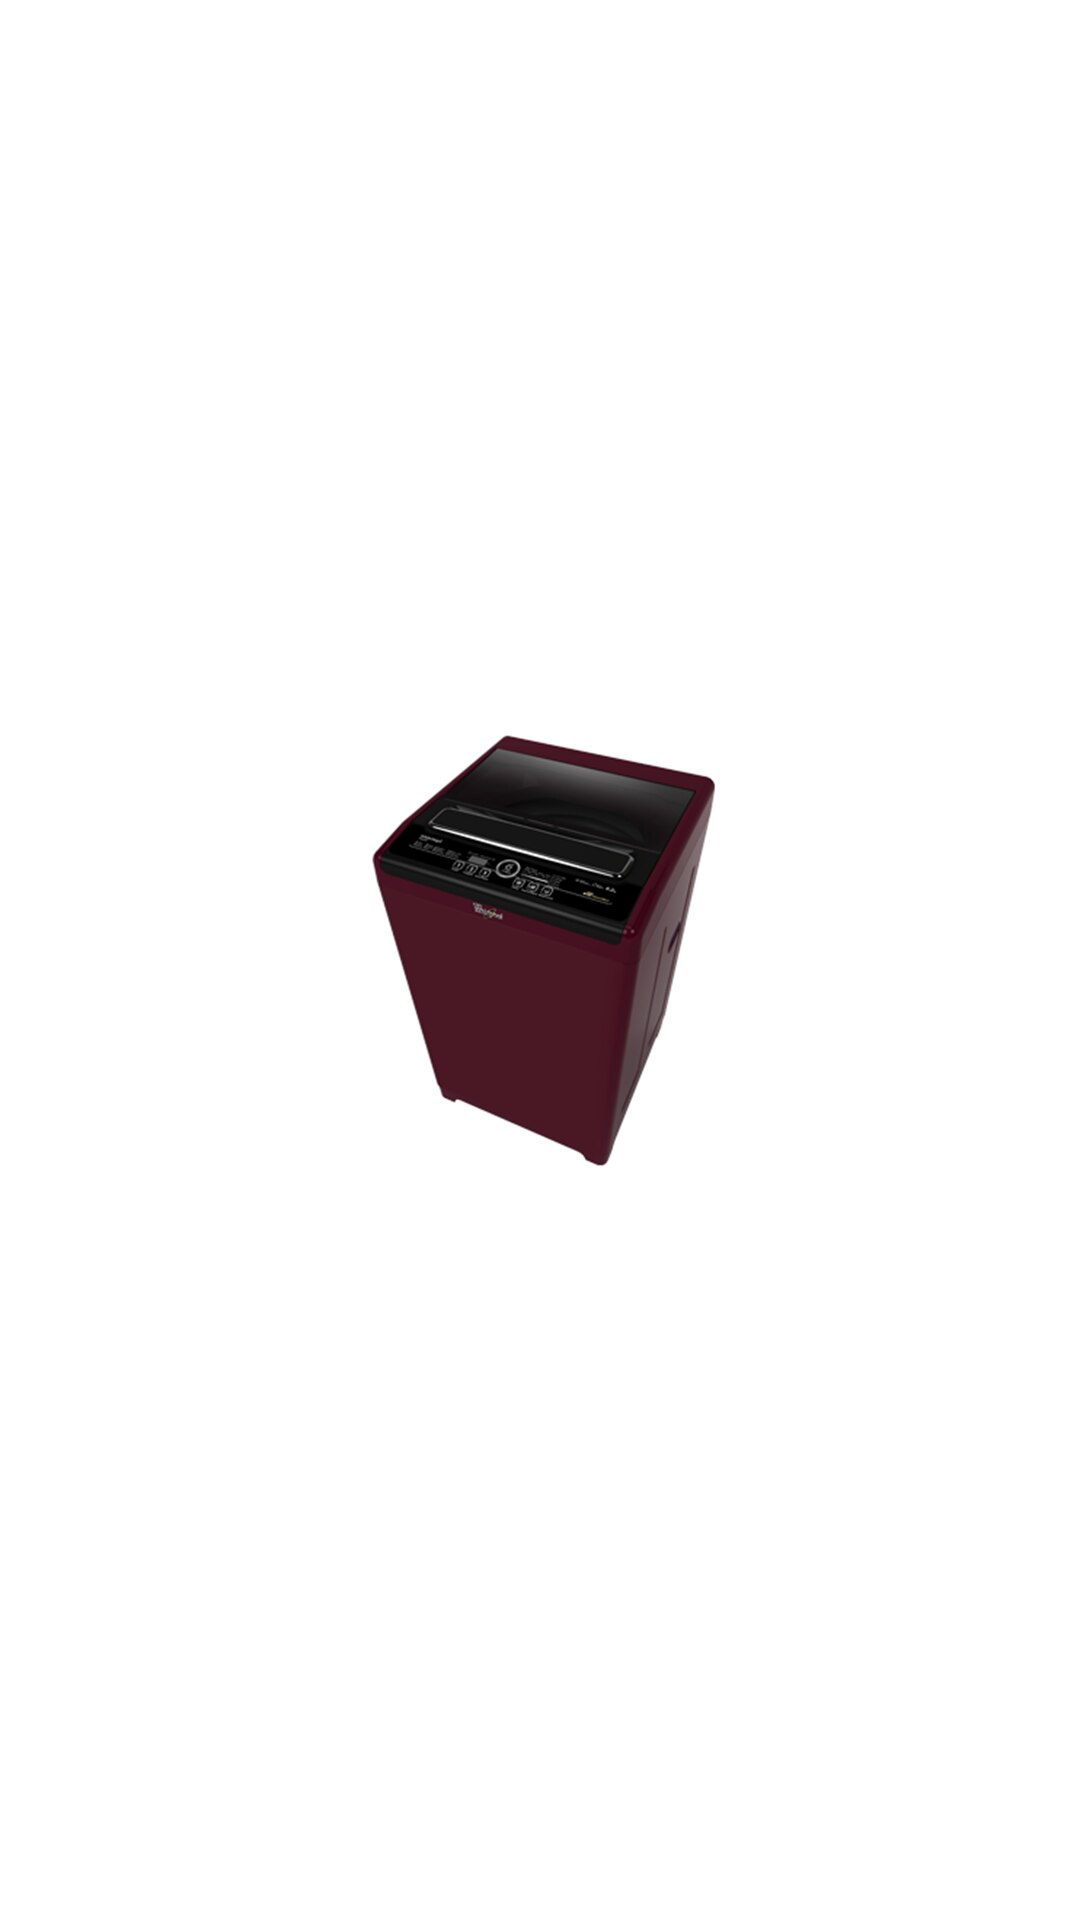 Whirlpool 6.2 kg Fully Automatic Top Load Washing Machine (WHITEMAGIC ROYALE 6212SD, Wine Red)